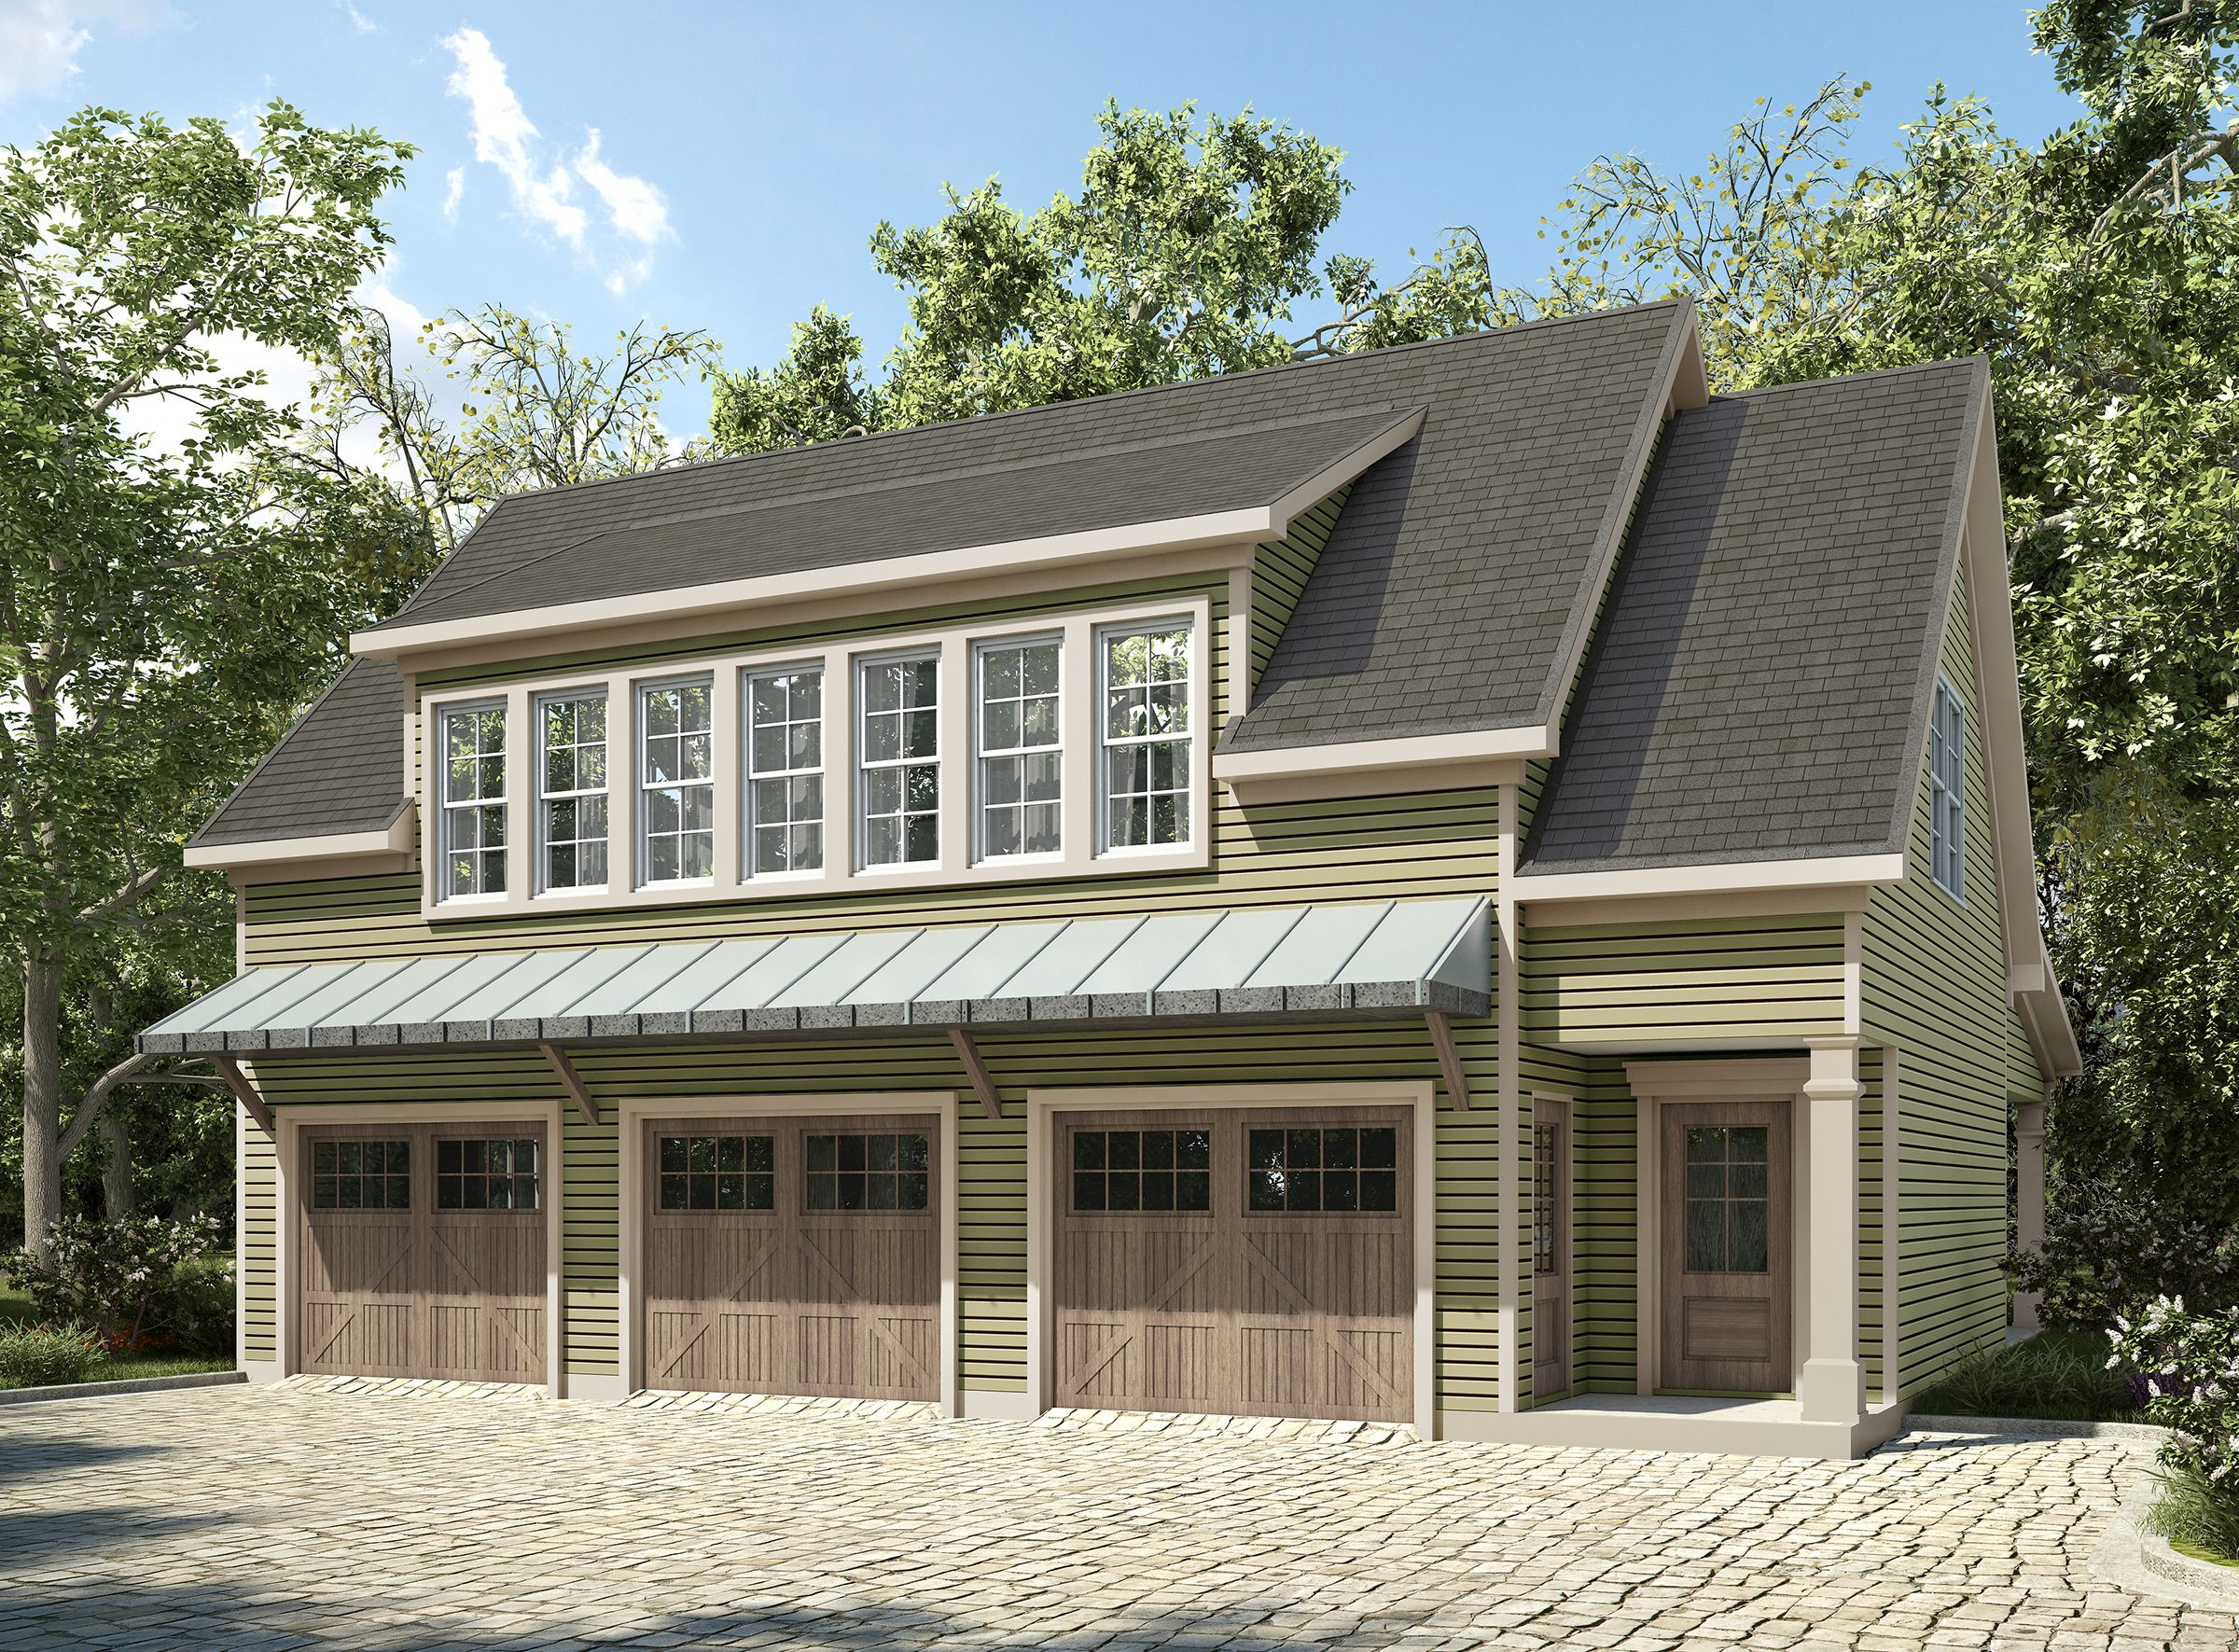 Plan 36057dk 3 bay carriage house plan with shed roof in back carriage house plans carriage - House plans with garage below ...